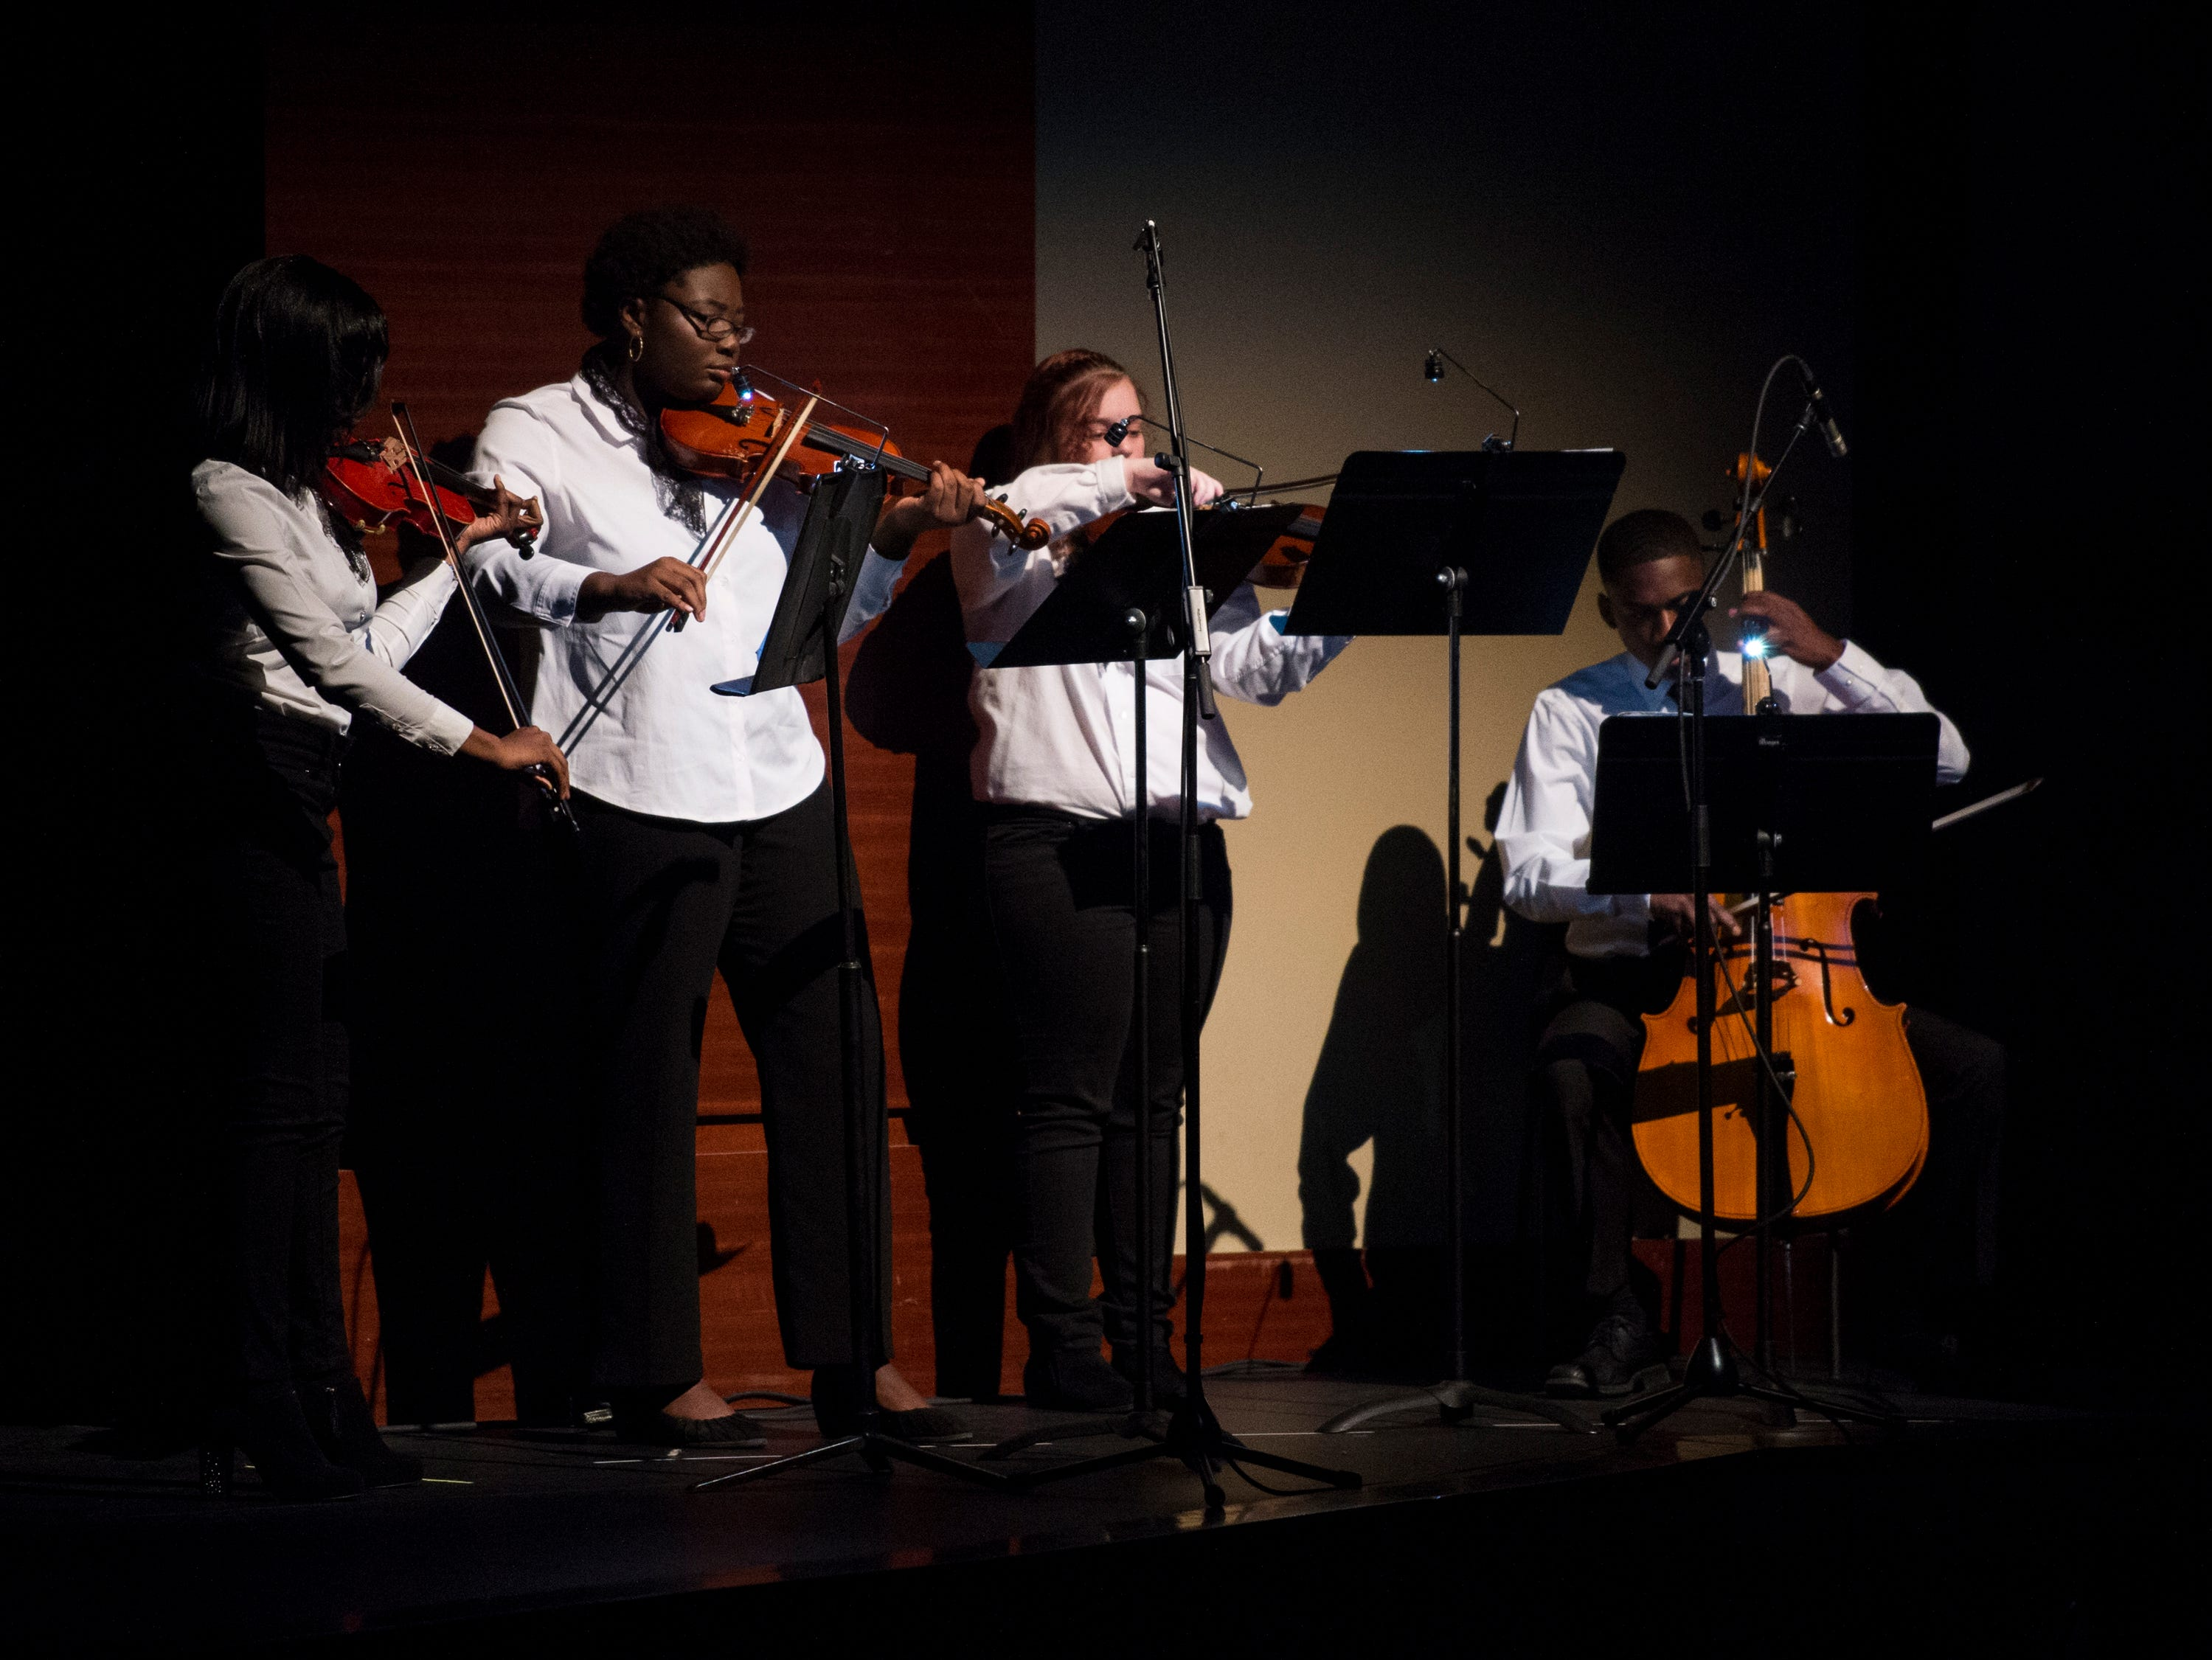 String students perform during the BTW Showcase: Rise at the Montgomery Performing Arts Center in Montgomery, Ala., on Friday, Jan. 11, 2019.